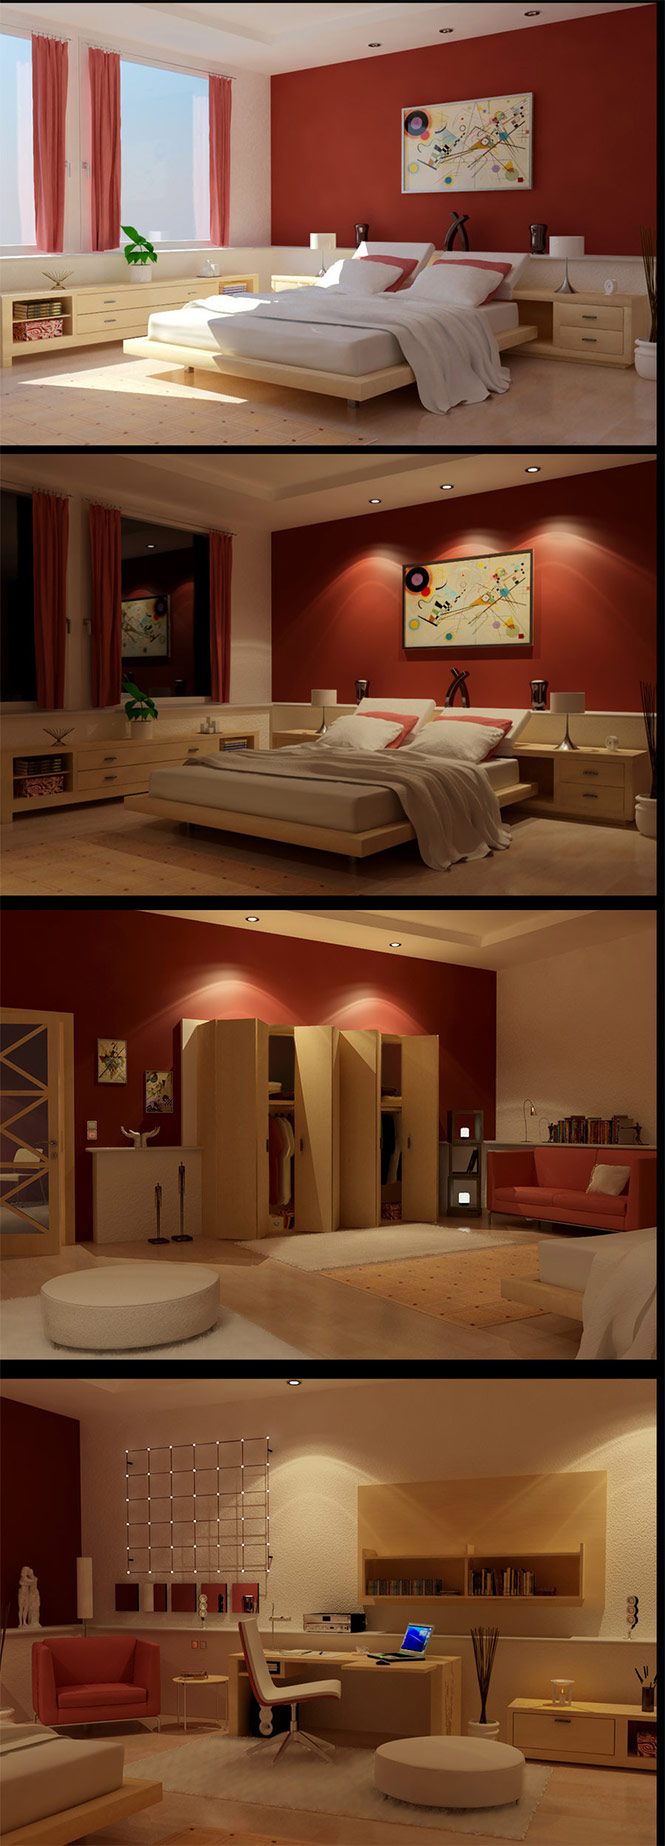 Also by ZigShot82. This bedroom uses a softer shade of red, and incorporates a lighter shade of wood to give off a more tranquil vibe. A beautiful office and closet area are included.